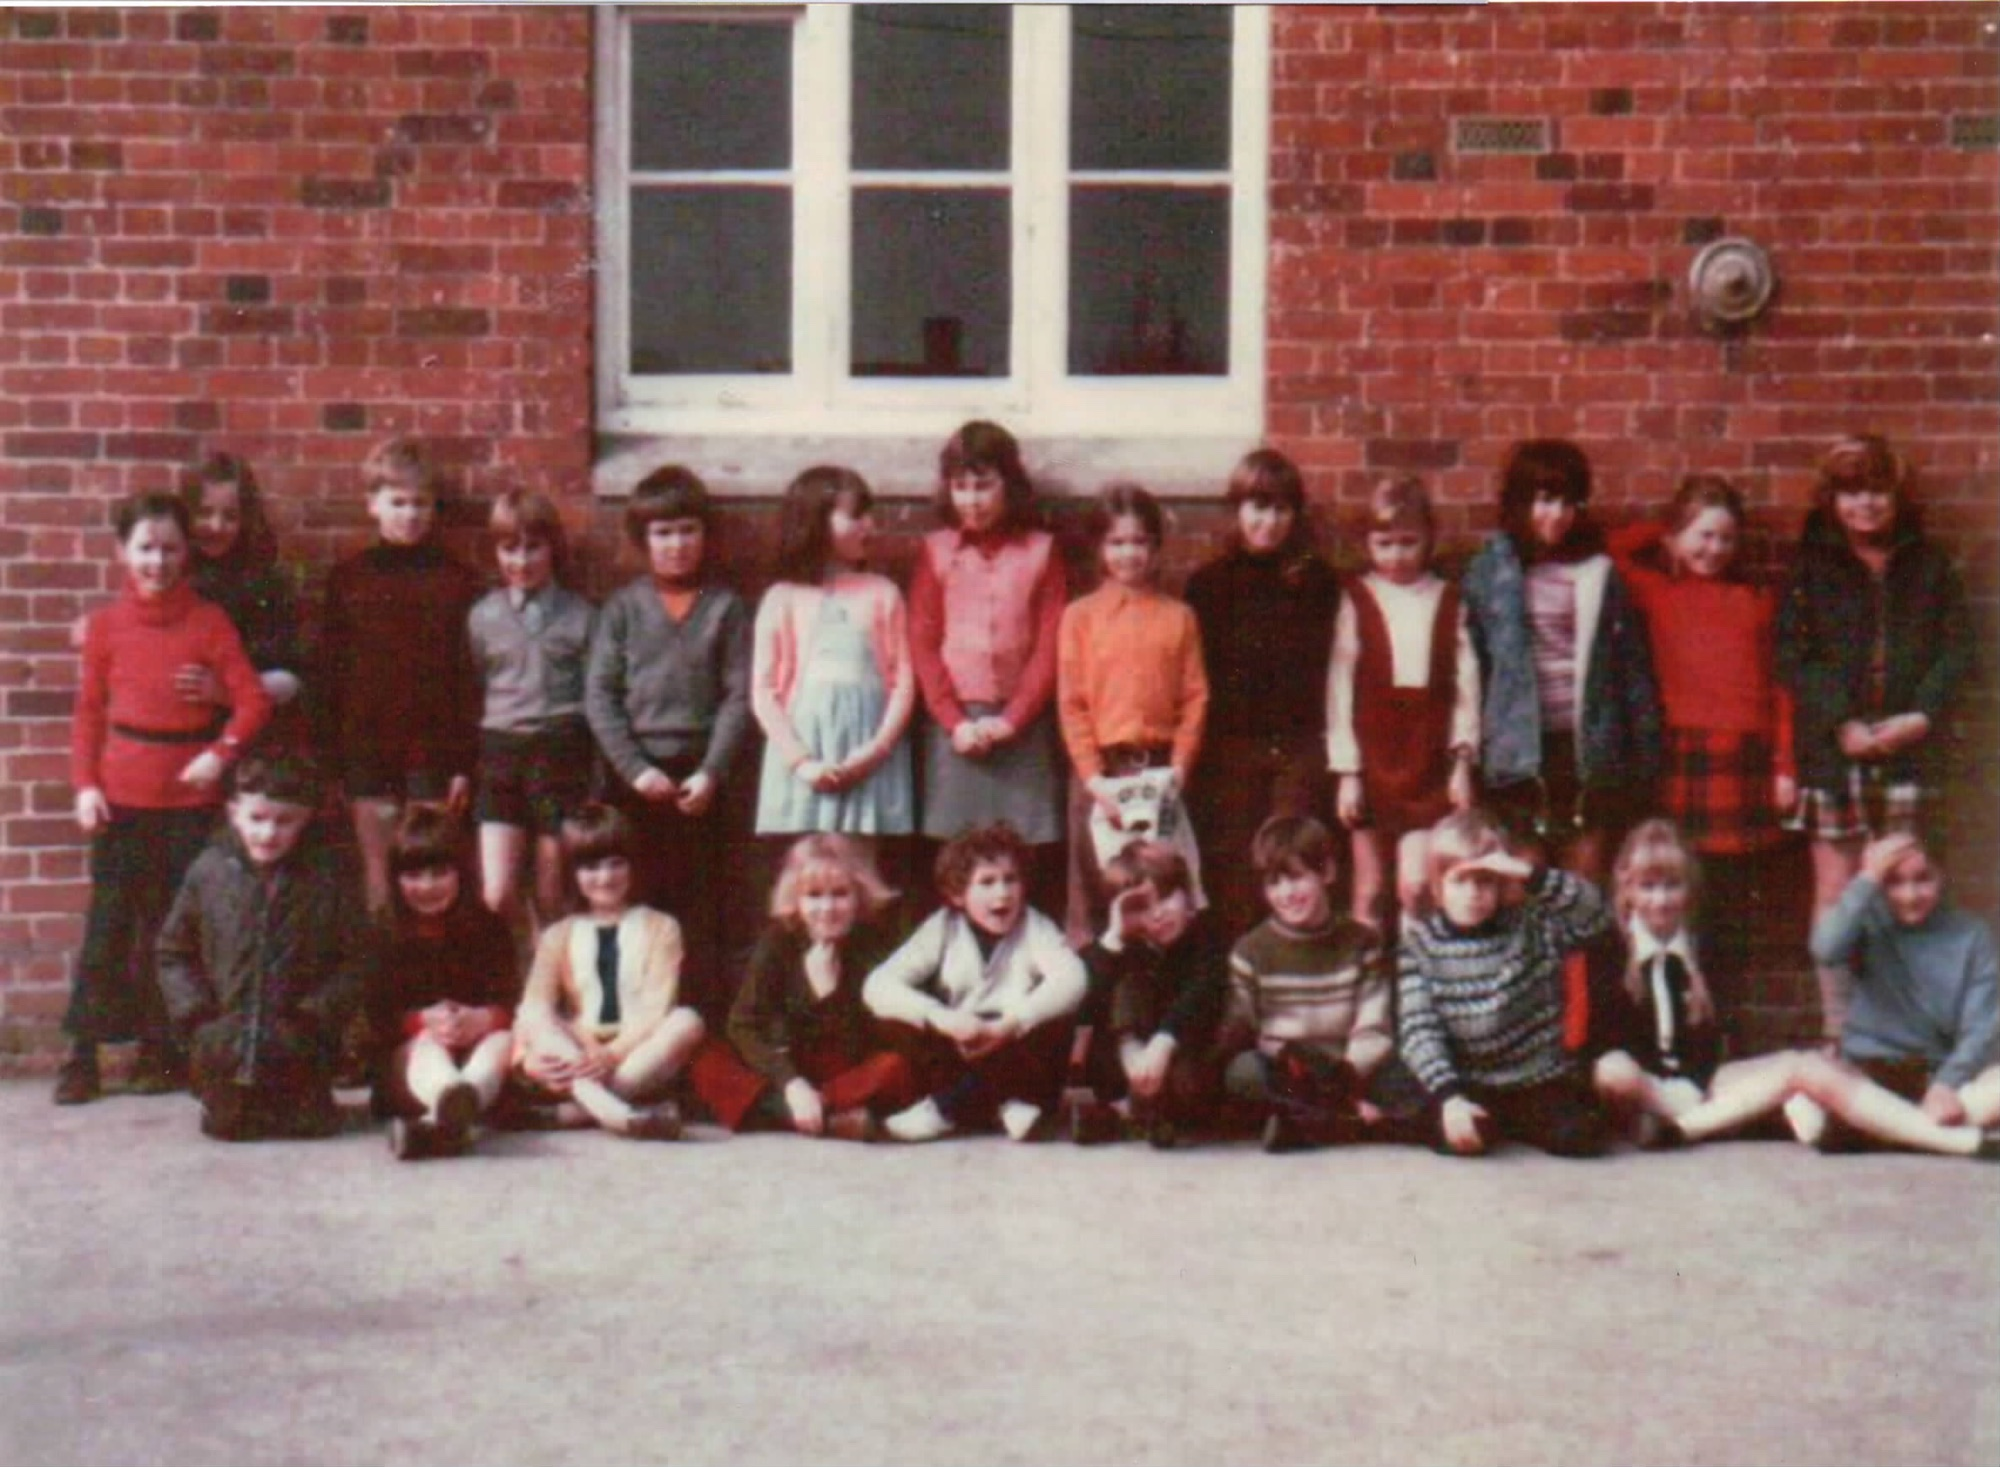 Chrishall School 1969 casual outdoor photo